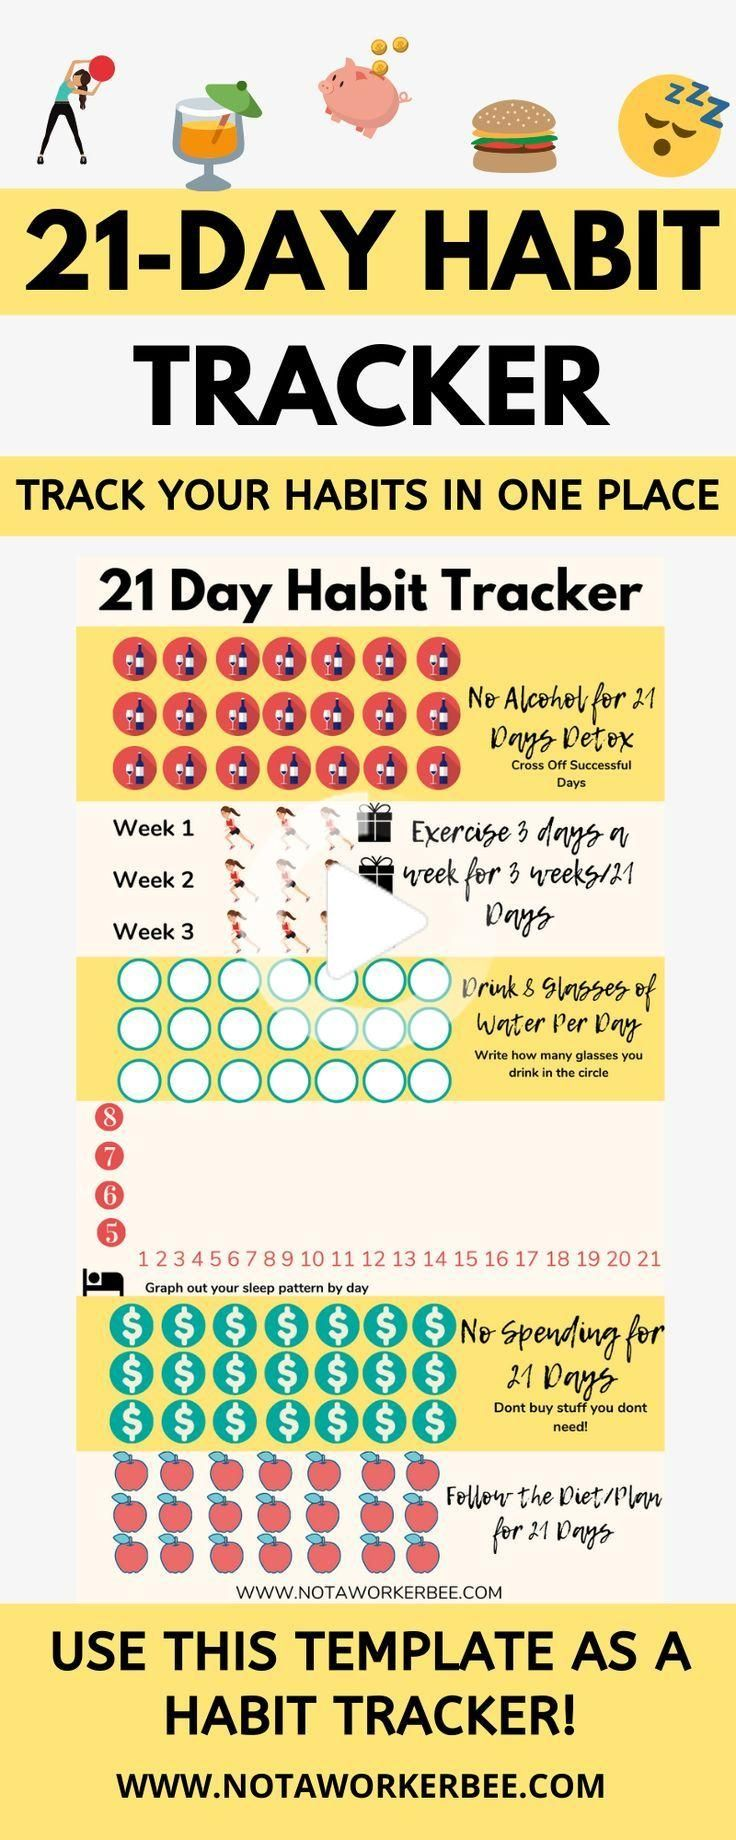 21 Day Habit Tracker For The New Year Not A Worker Bee 21 Days Habit Habit Tracker Break A Habit